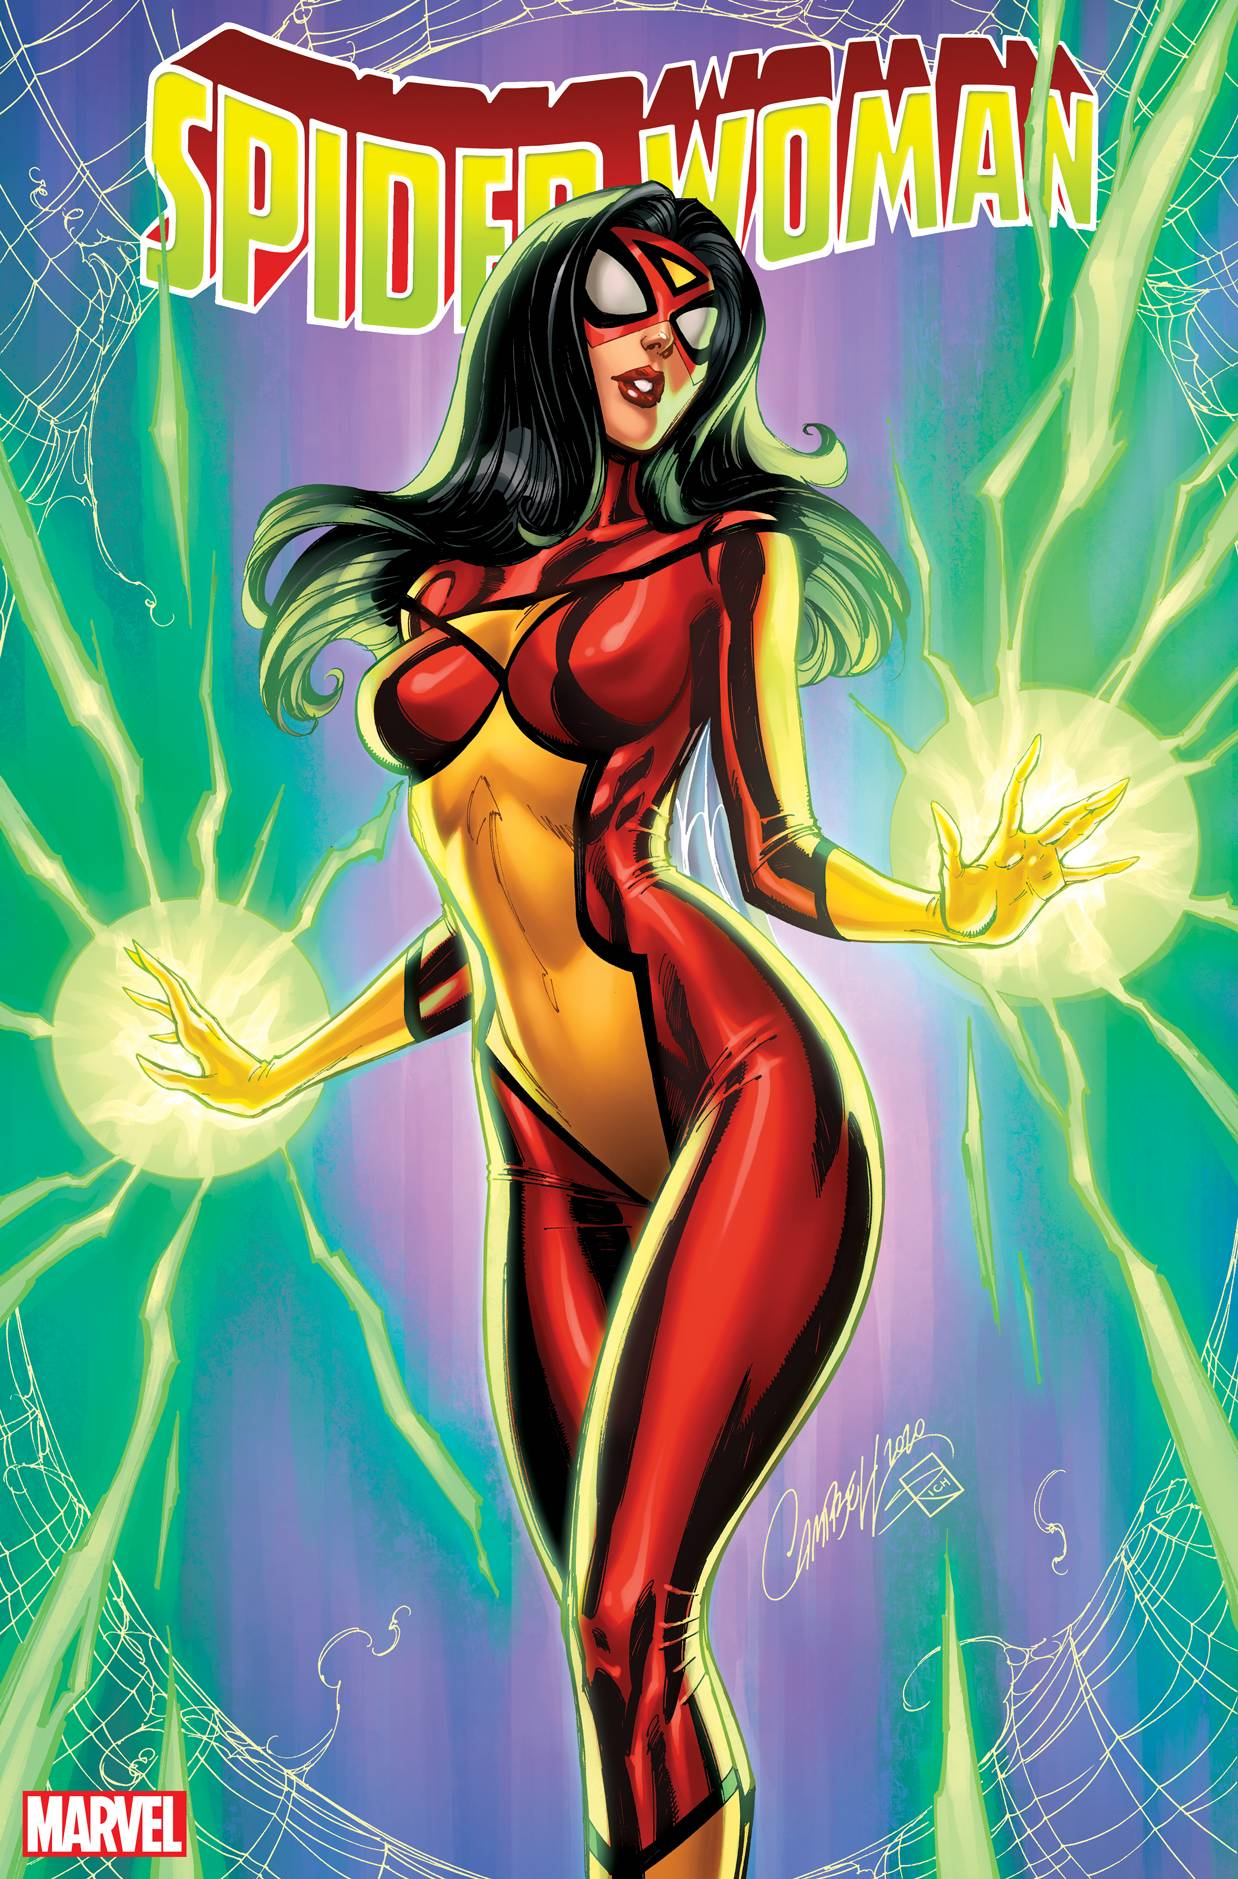 03/18/2020 SPIDER-WOMAN #1 JS CAMPBELL VAR